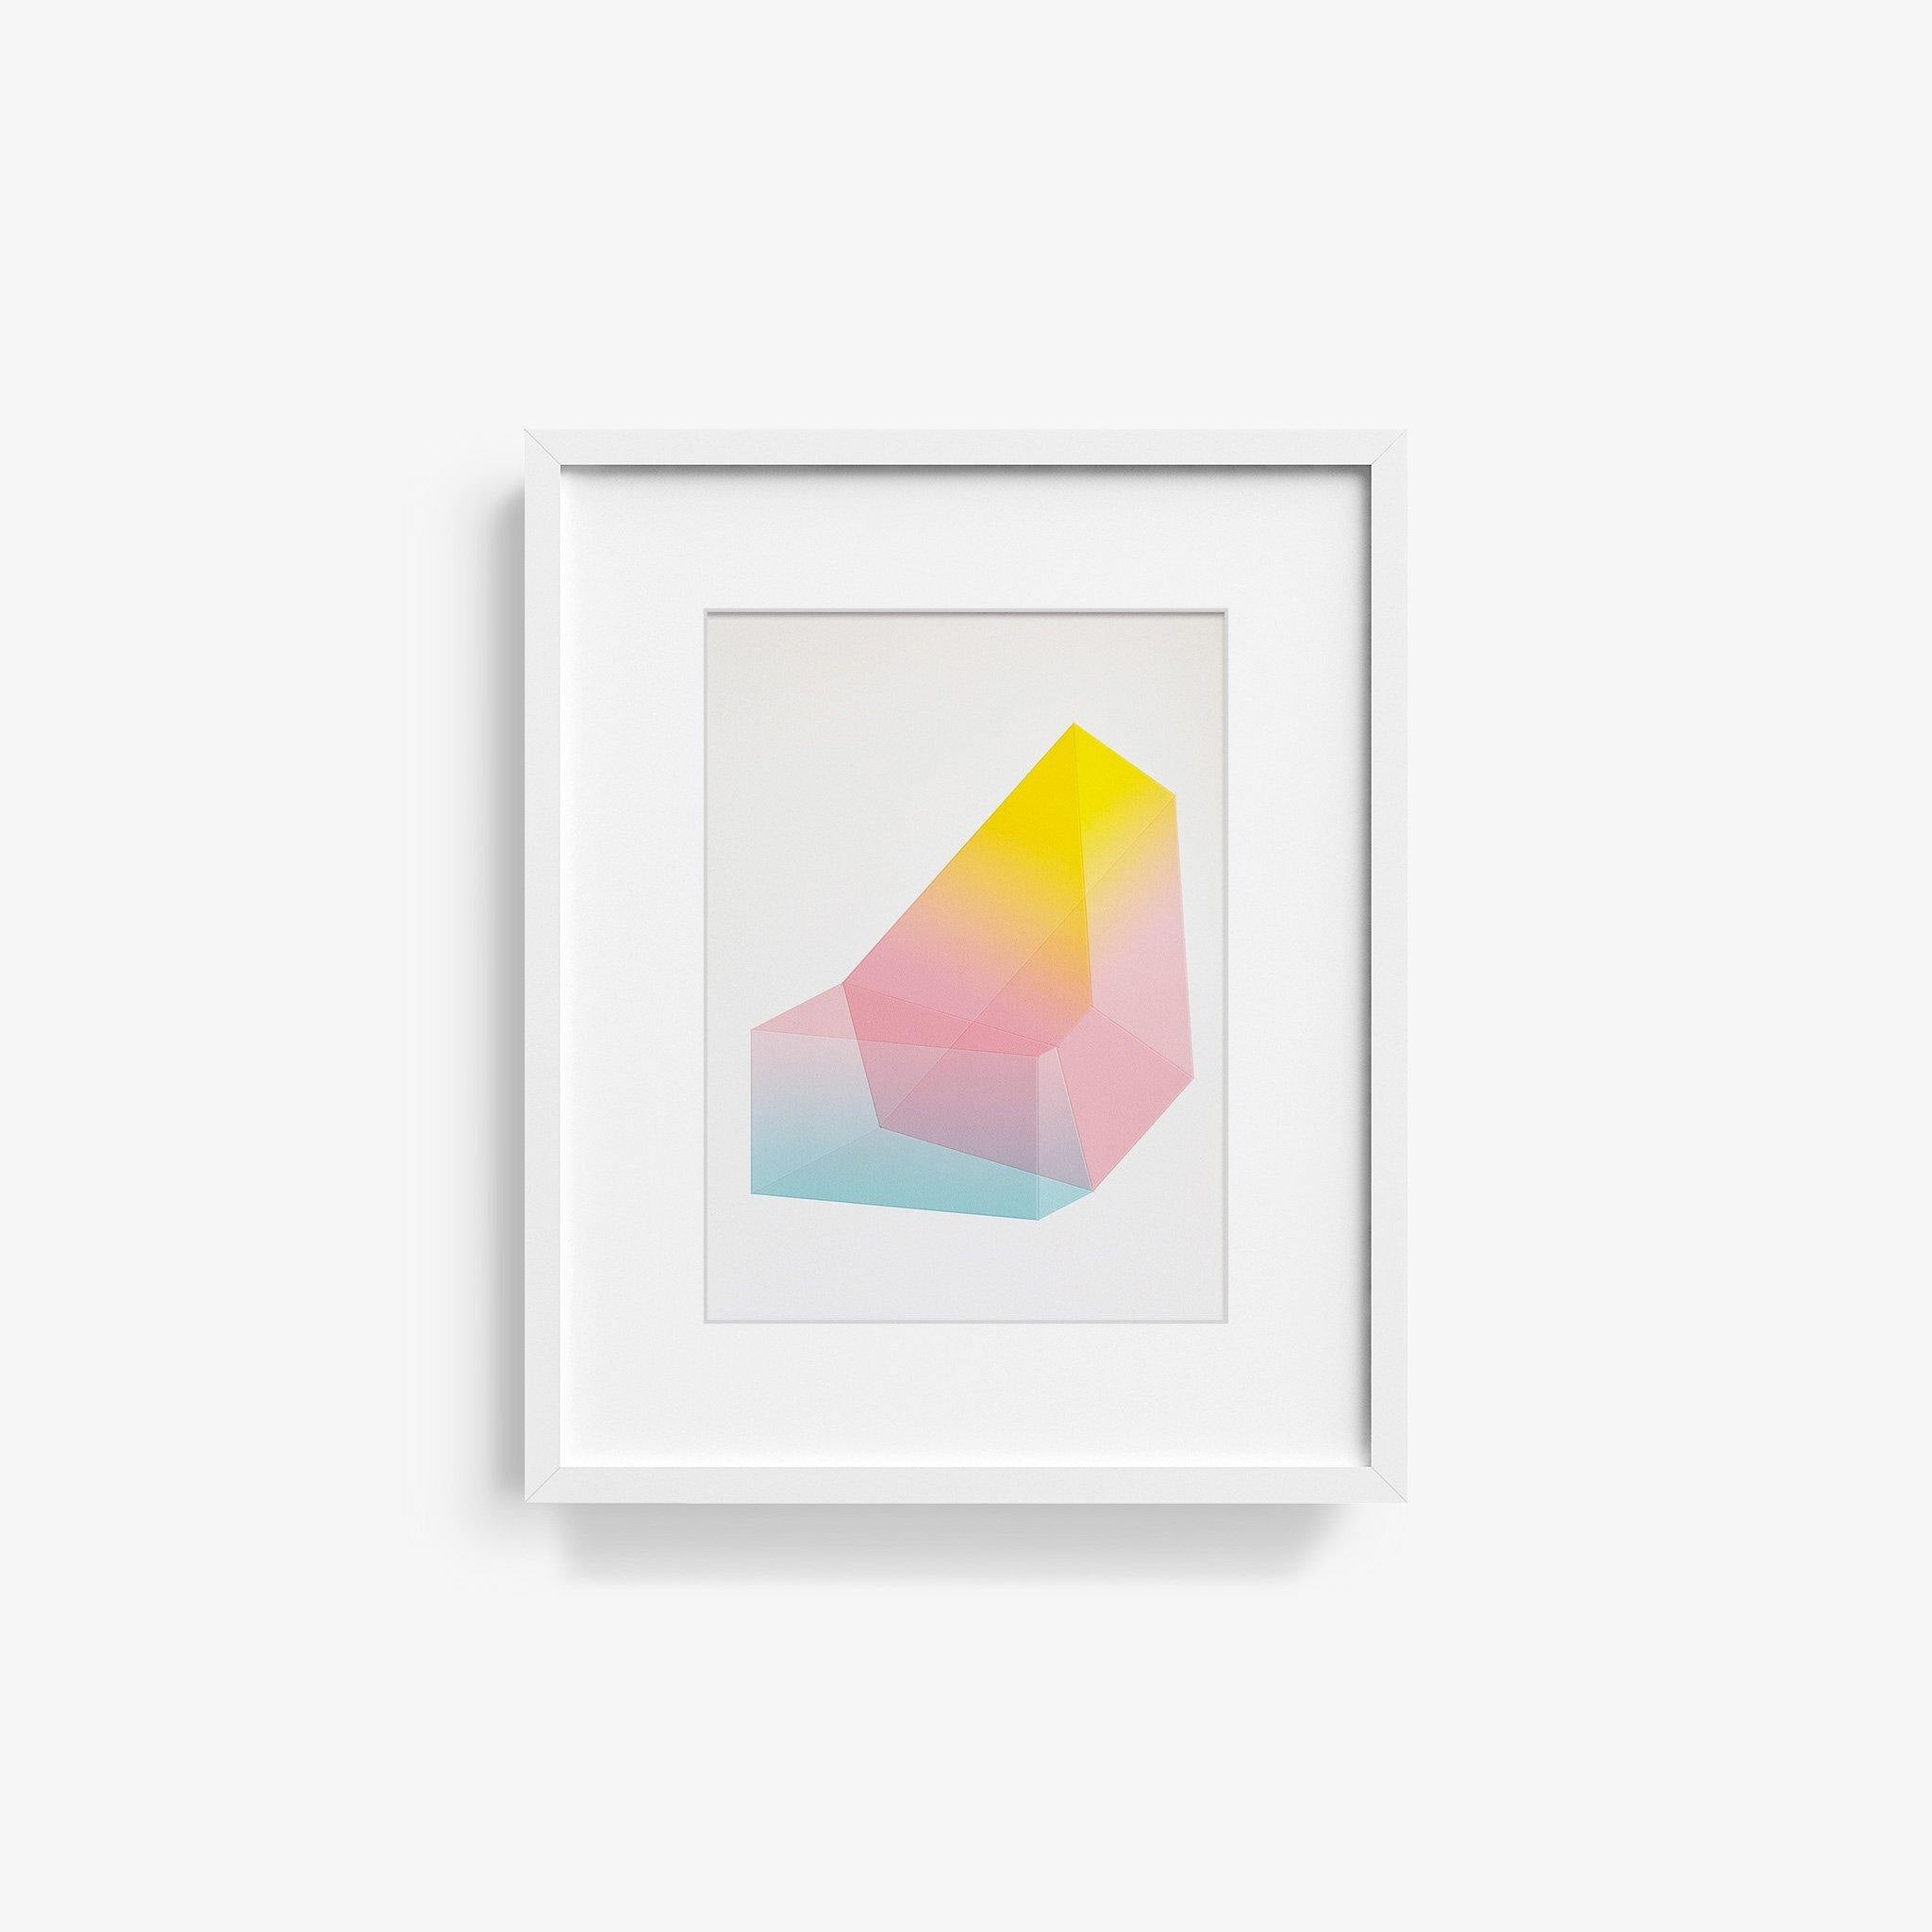 Accidental Happiness, No. 49, Print  by  Accidental Happiness, No. 49 Tappan